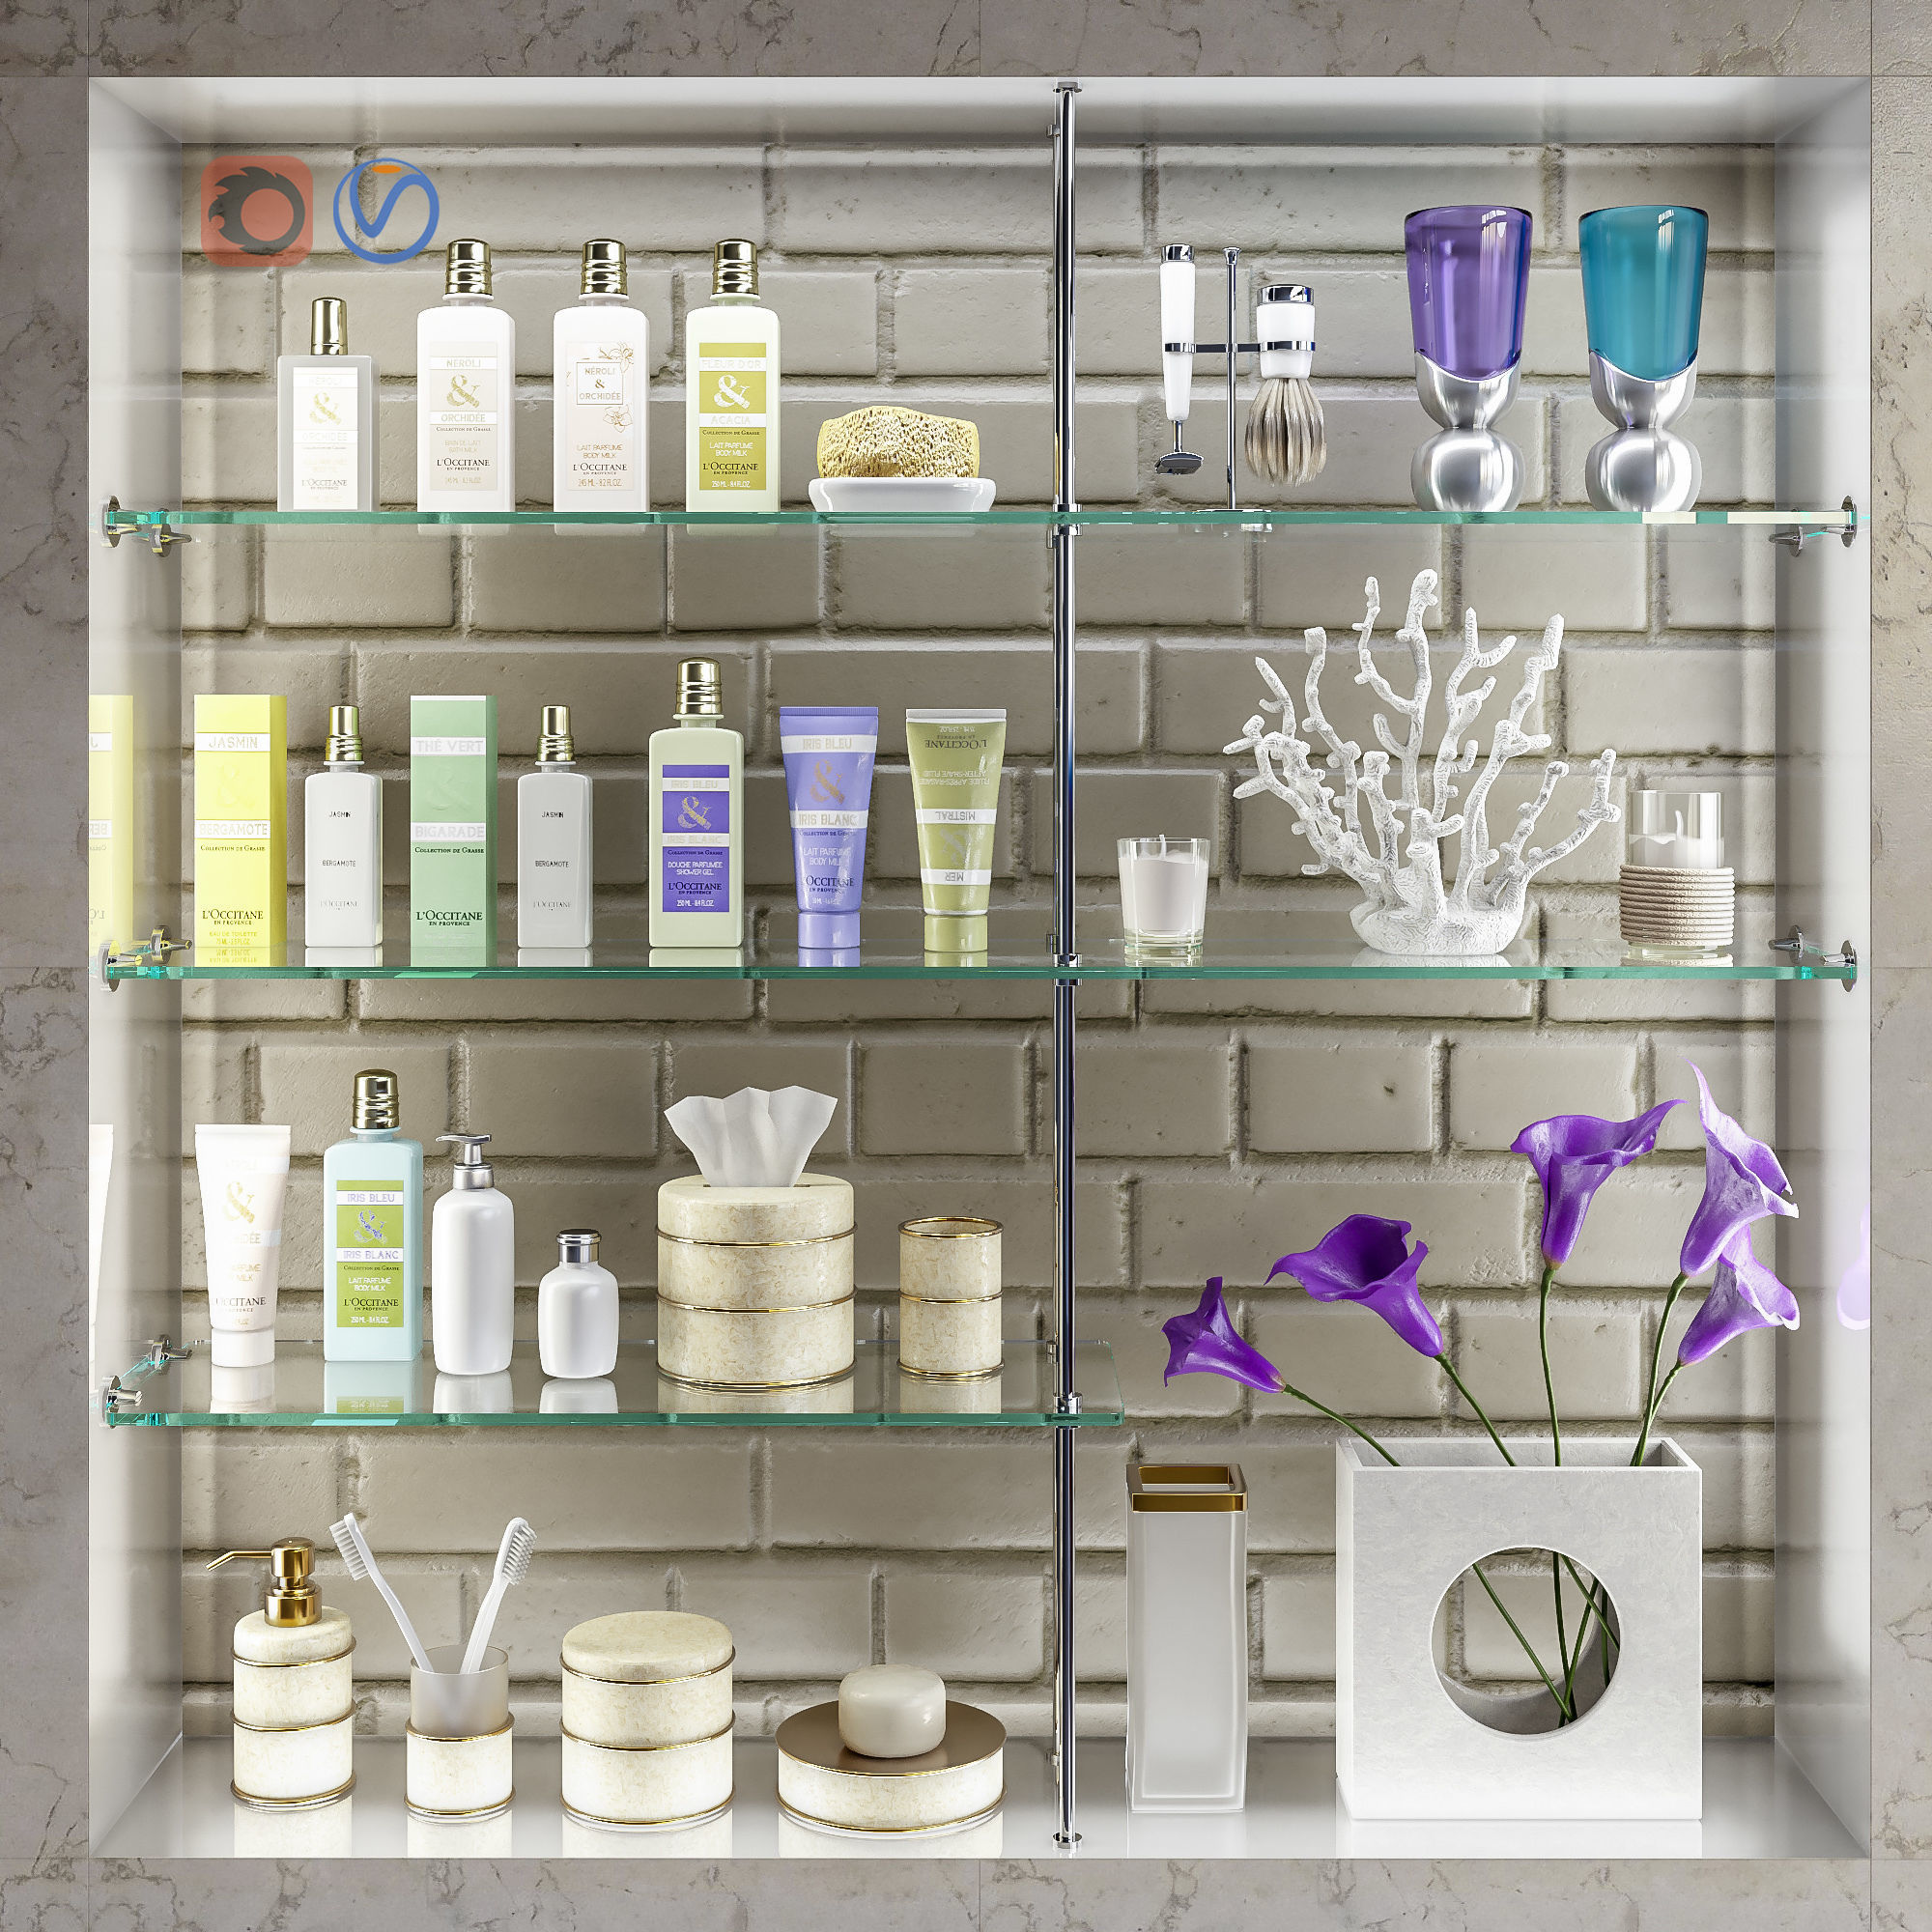 Accessories decor and cosmetics for the bathroom set 4